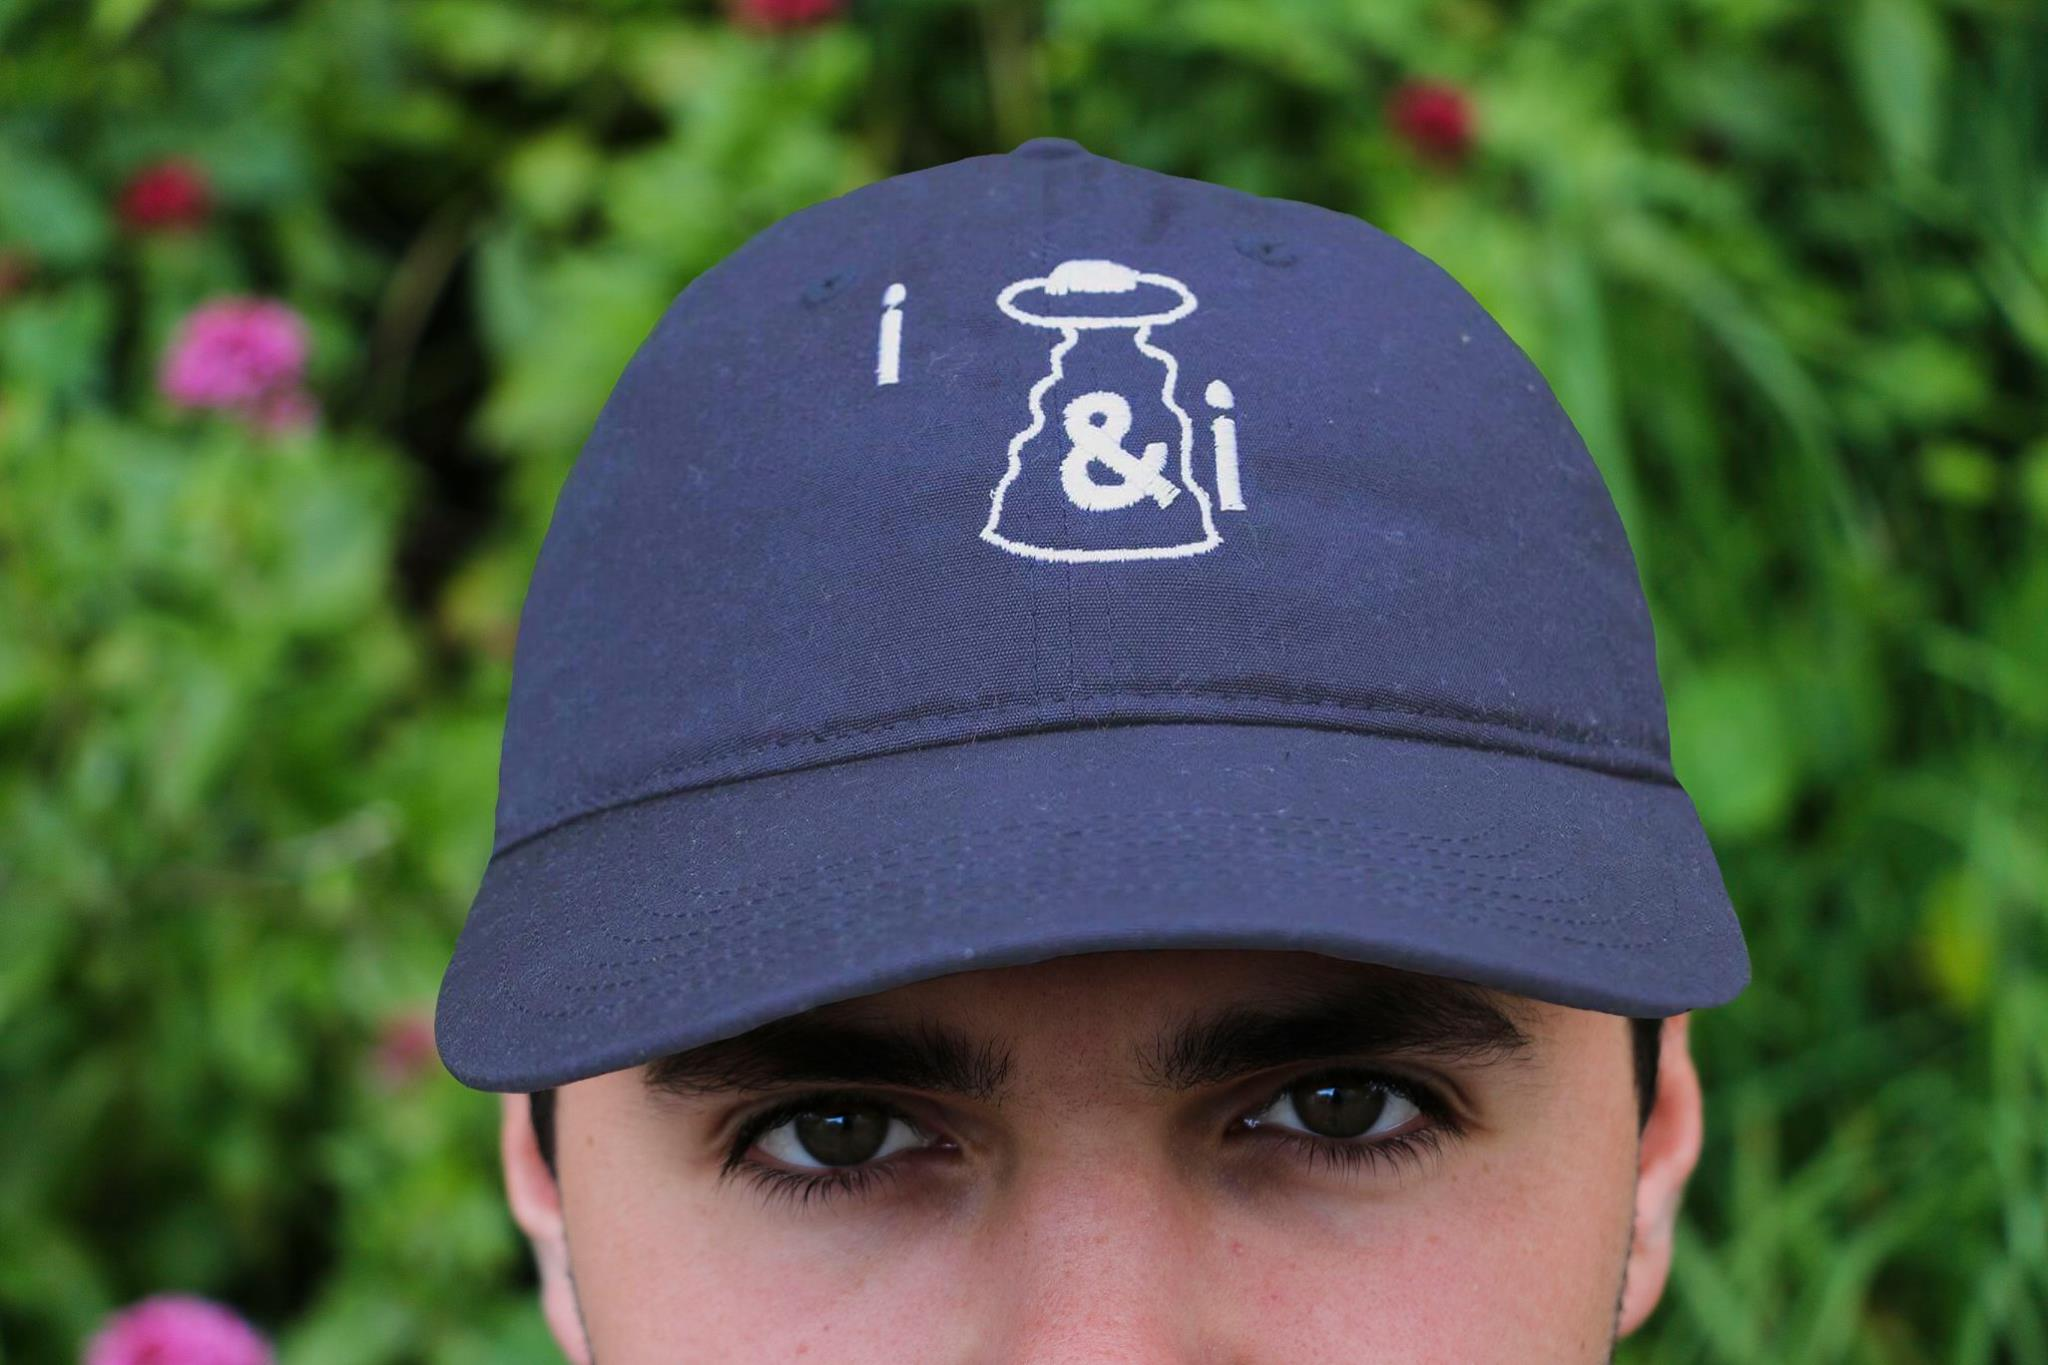 The Limited Edition Baseball Cap